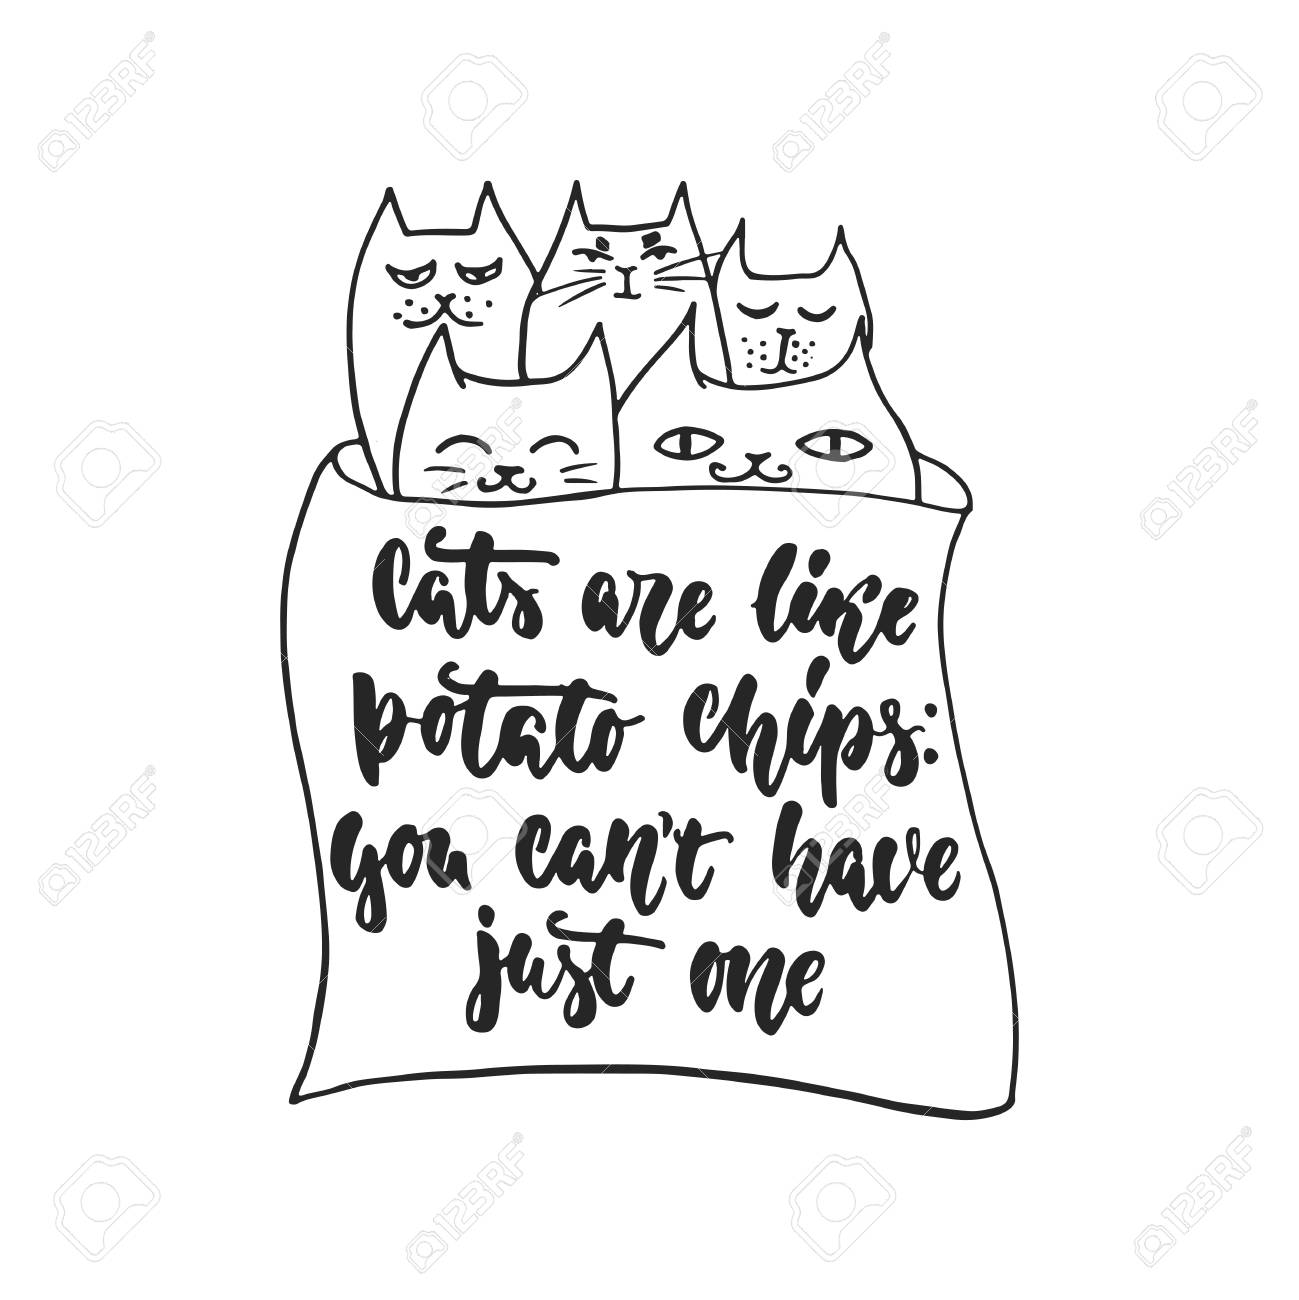 06df317bd Cats are like potato chips, you cant have just one - hand drawn dancing  lettering quote isolated on the white background. Fun brush ink inscription  for ...